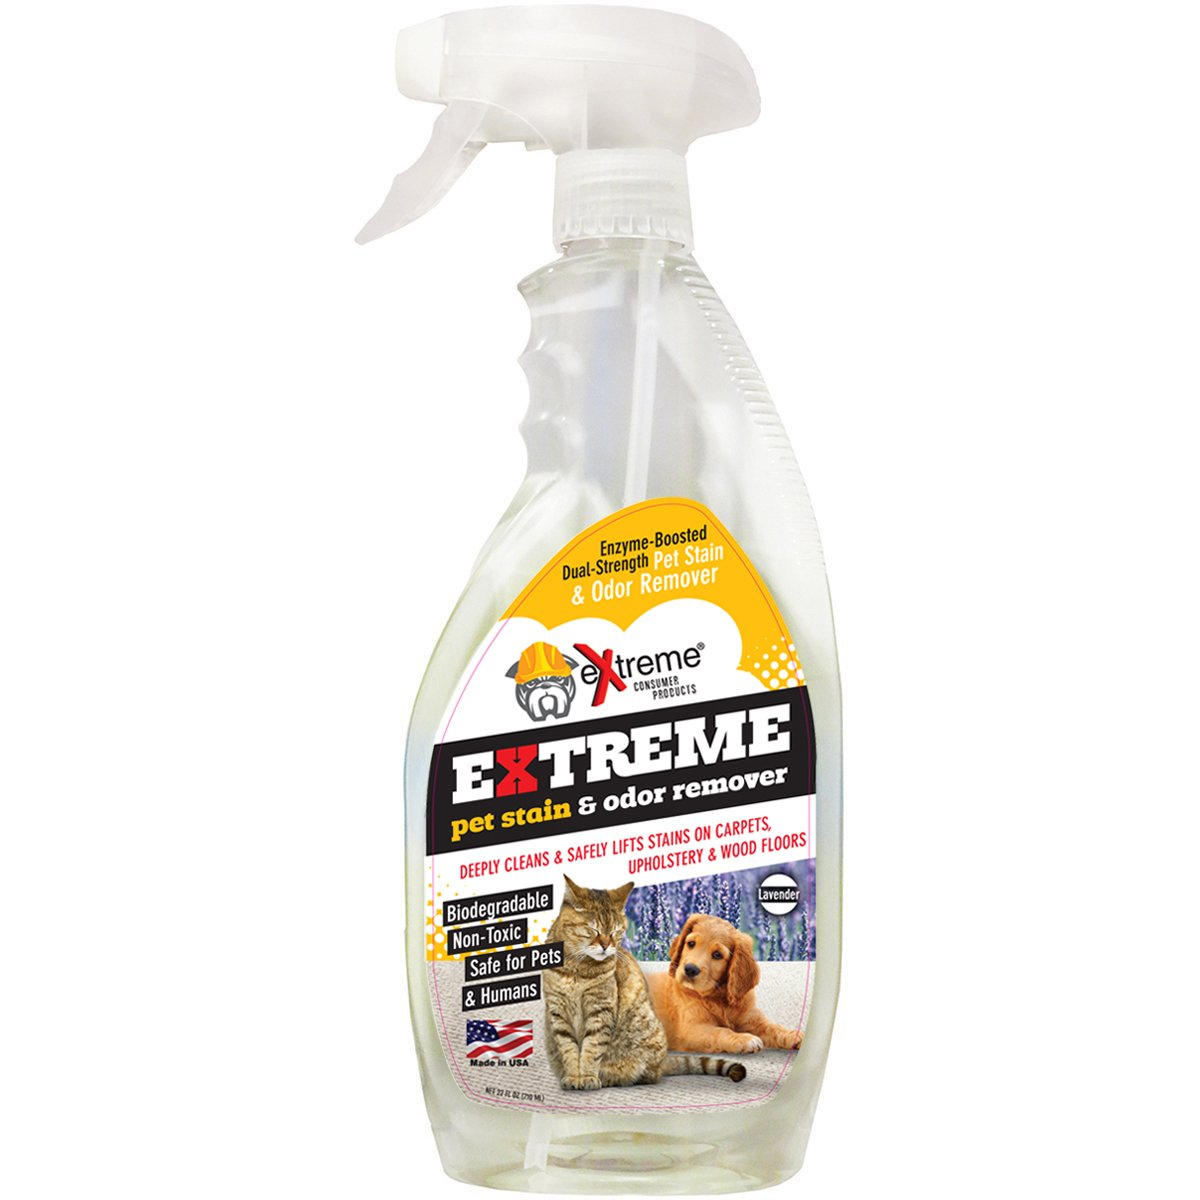 Extreme Pet Stain & Odor Remover - Lavender Scent - Non-Toxic and Biodegradable - Safe for Pets and Humans - Carpets, Wood, Upholstery - 22oz Spray Bottle